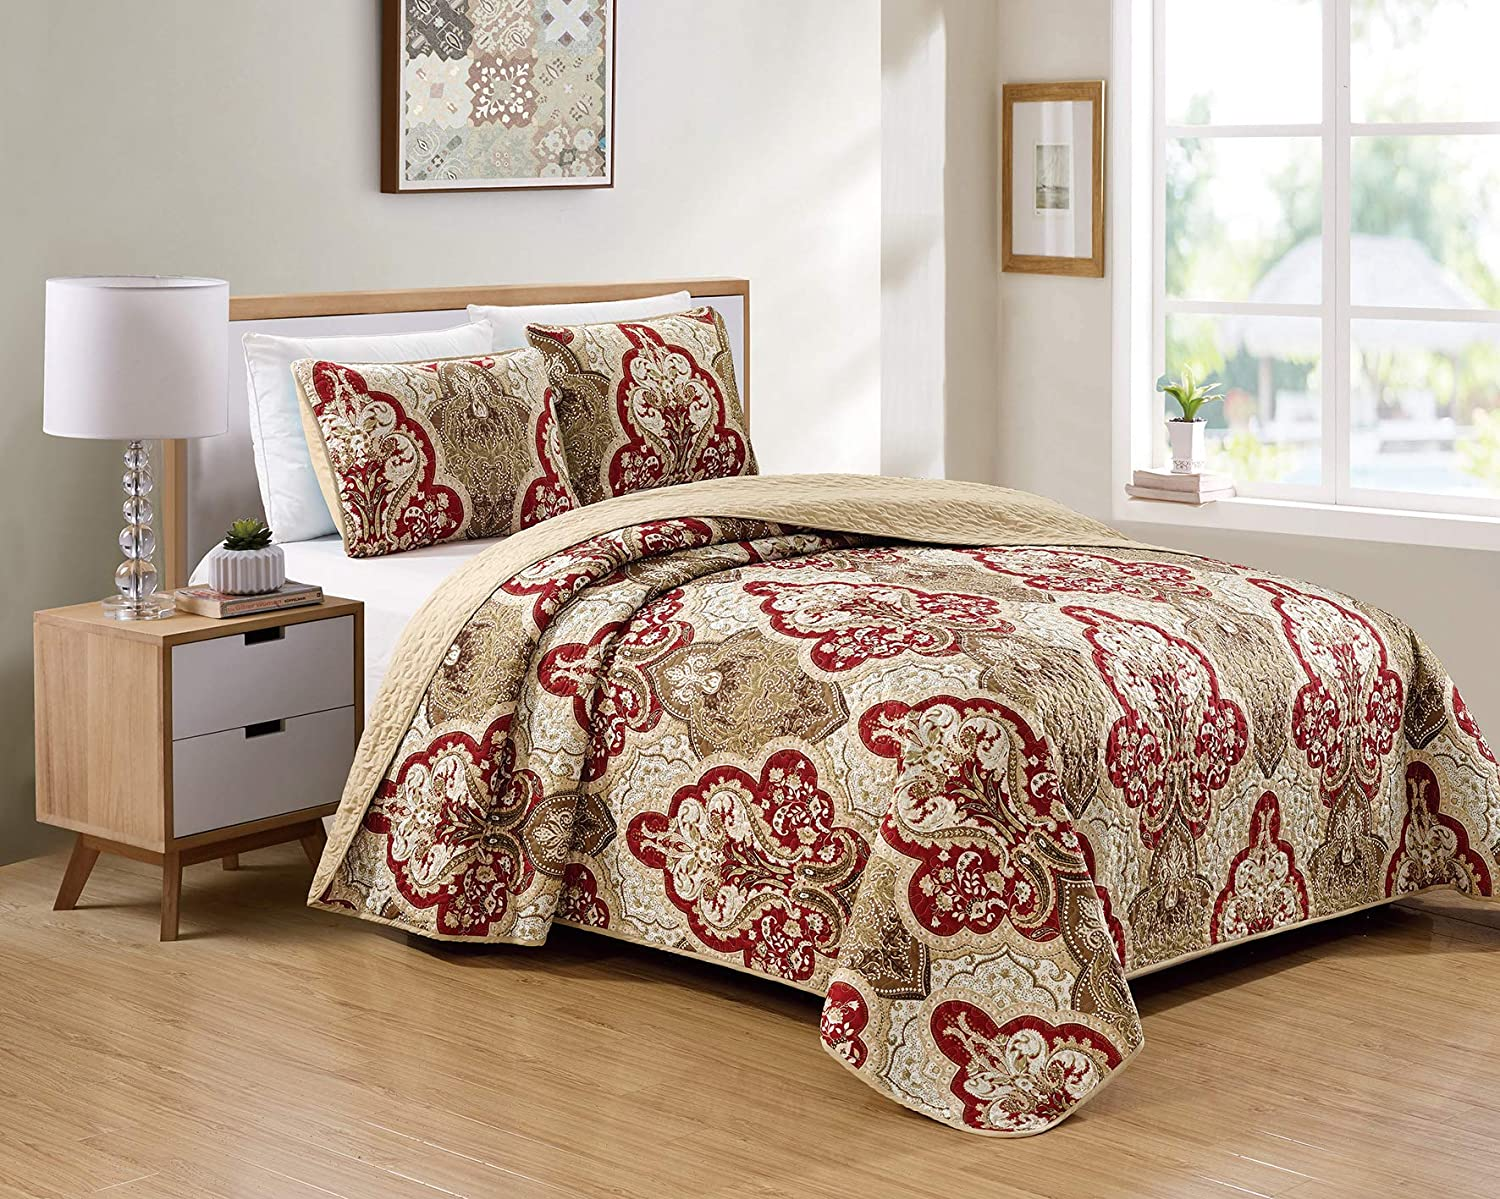 Better Home Style 2 Piece Luxury Lush Soft Taupe Burgundy Motif Ornamental Floral Printed Design Coverlet Bedspread Quilt Oversized Bed Cover Set # 3562 (Taupe, Twin/Twin XL)